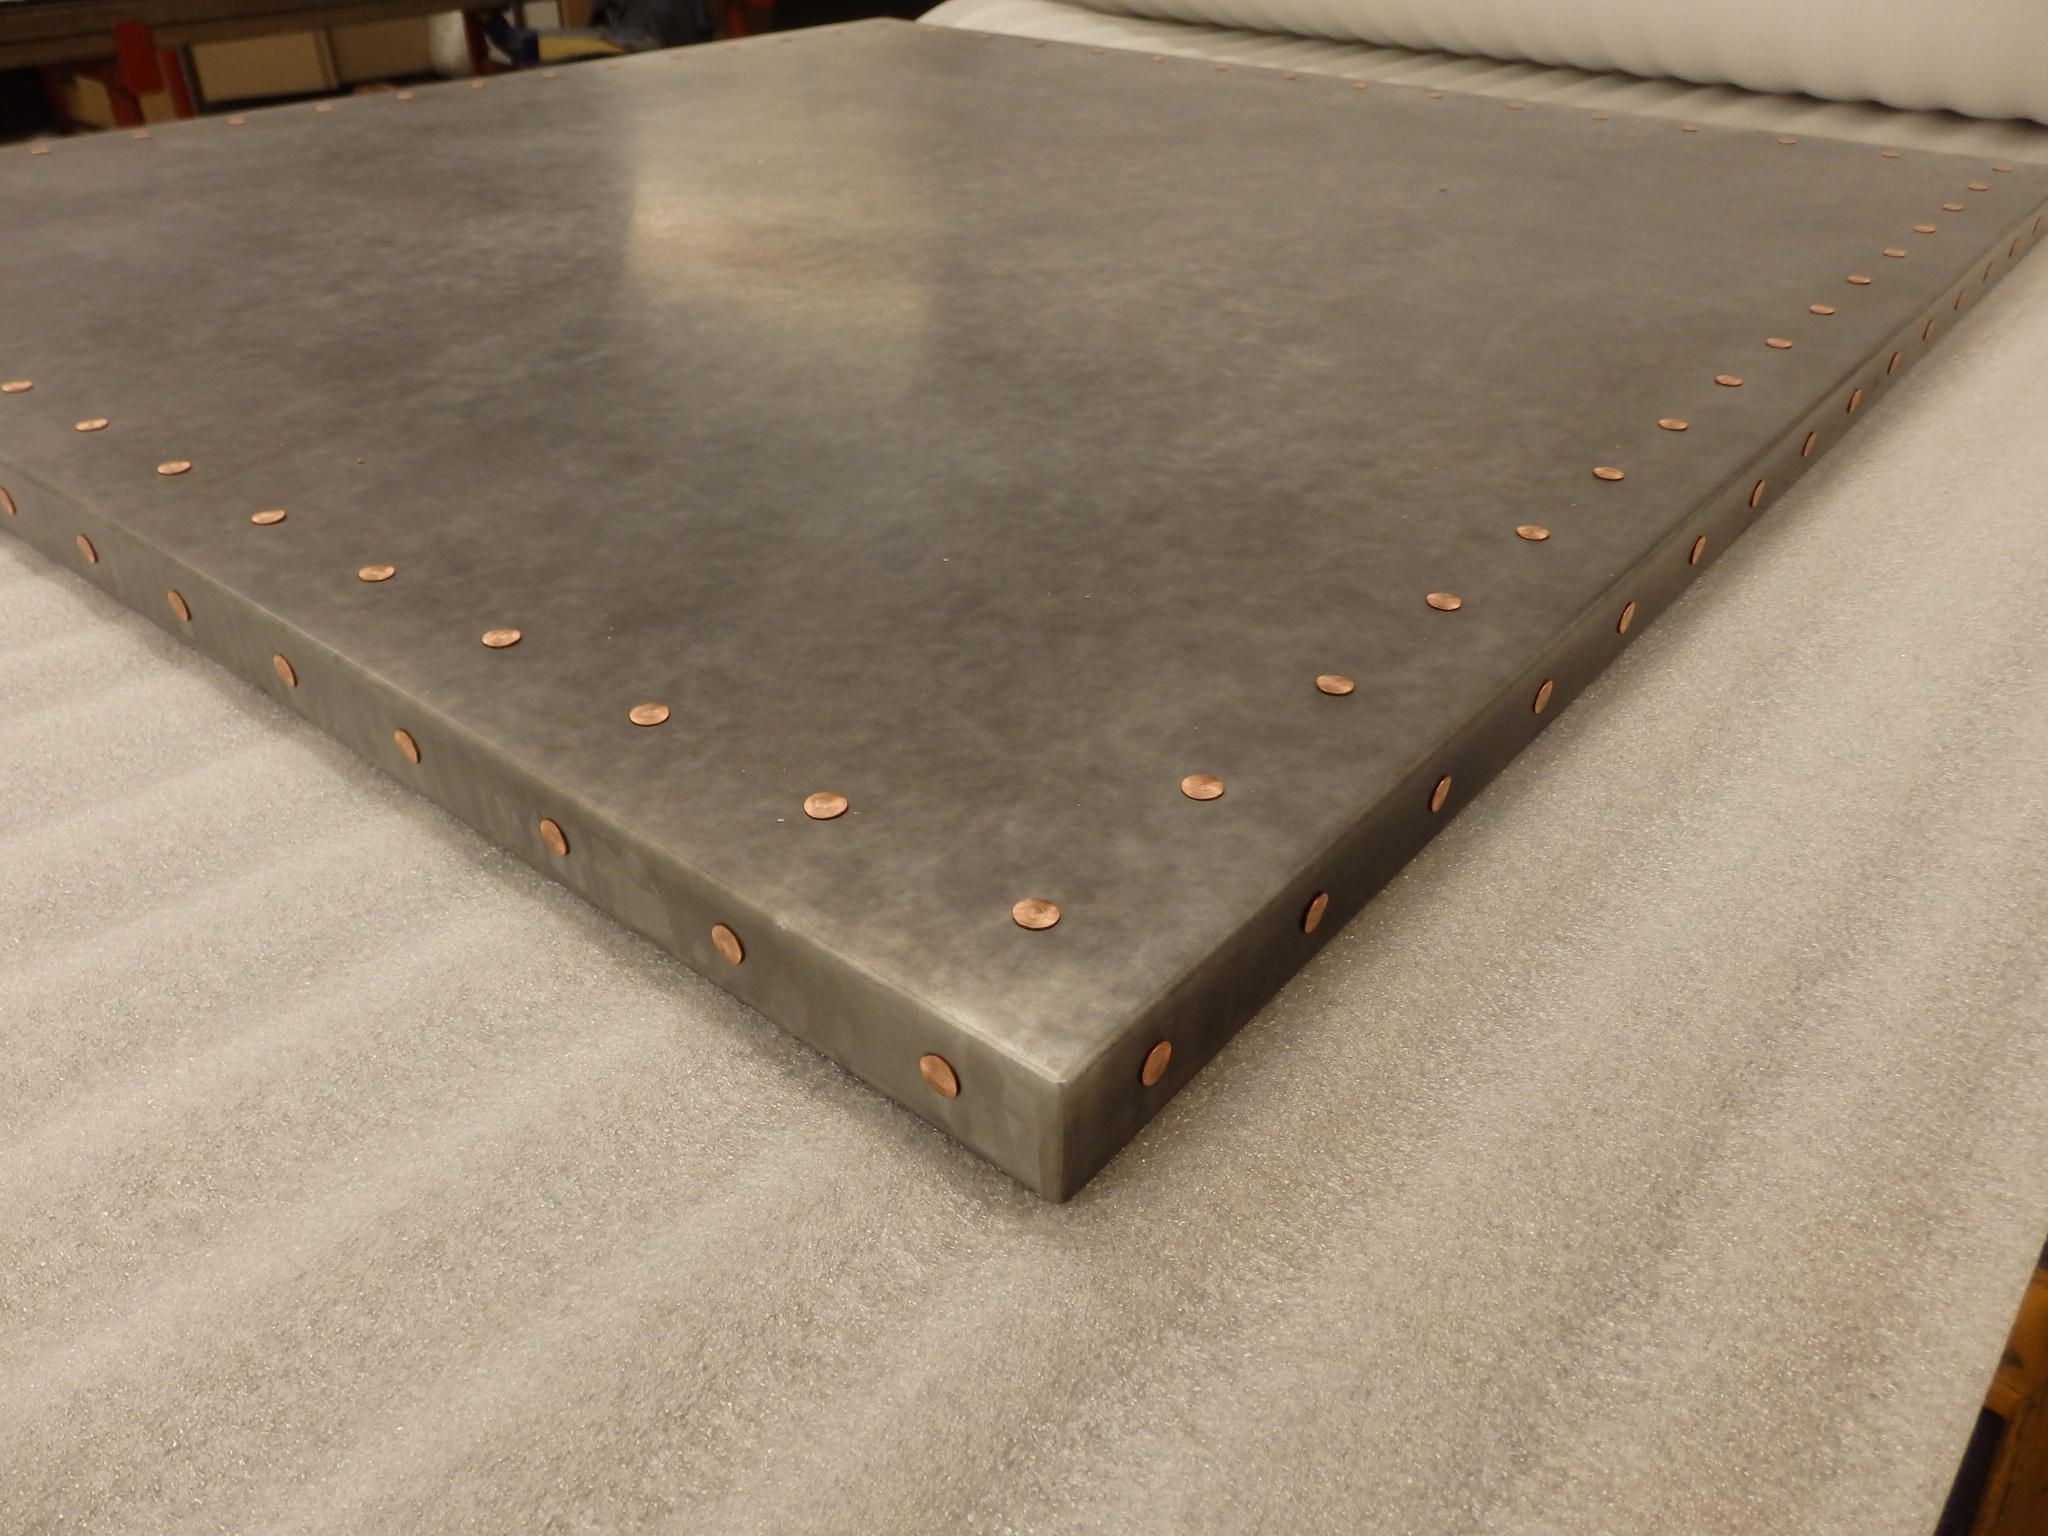 3d54991132893 185 - Light Patina Zinc Table Top with Copper Rivets